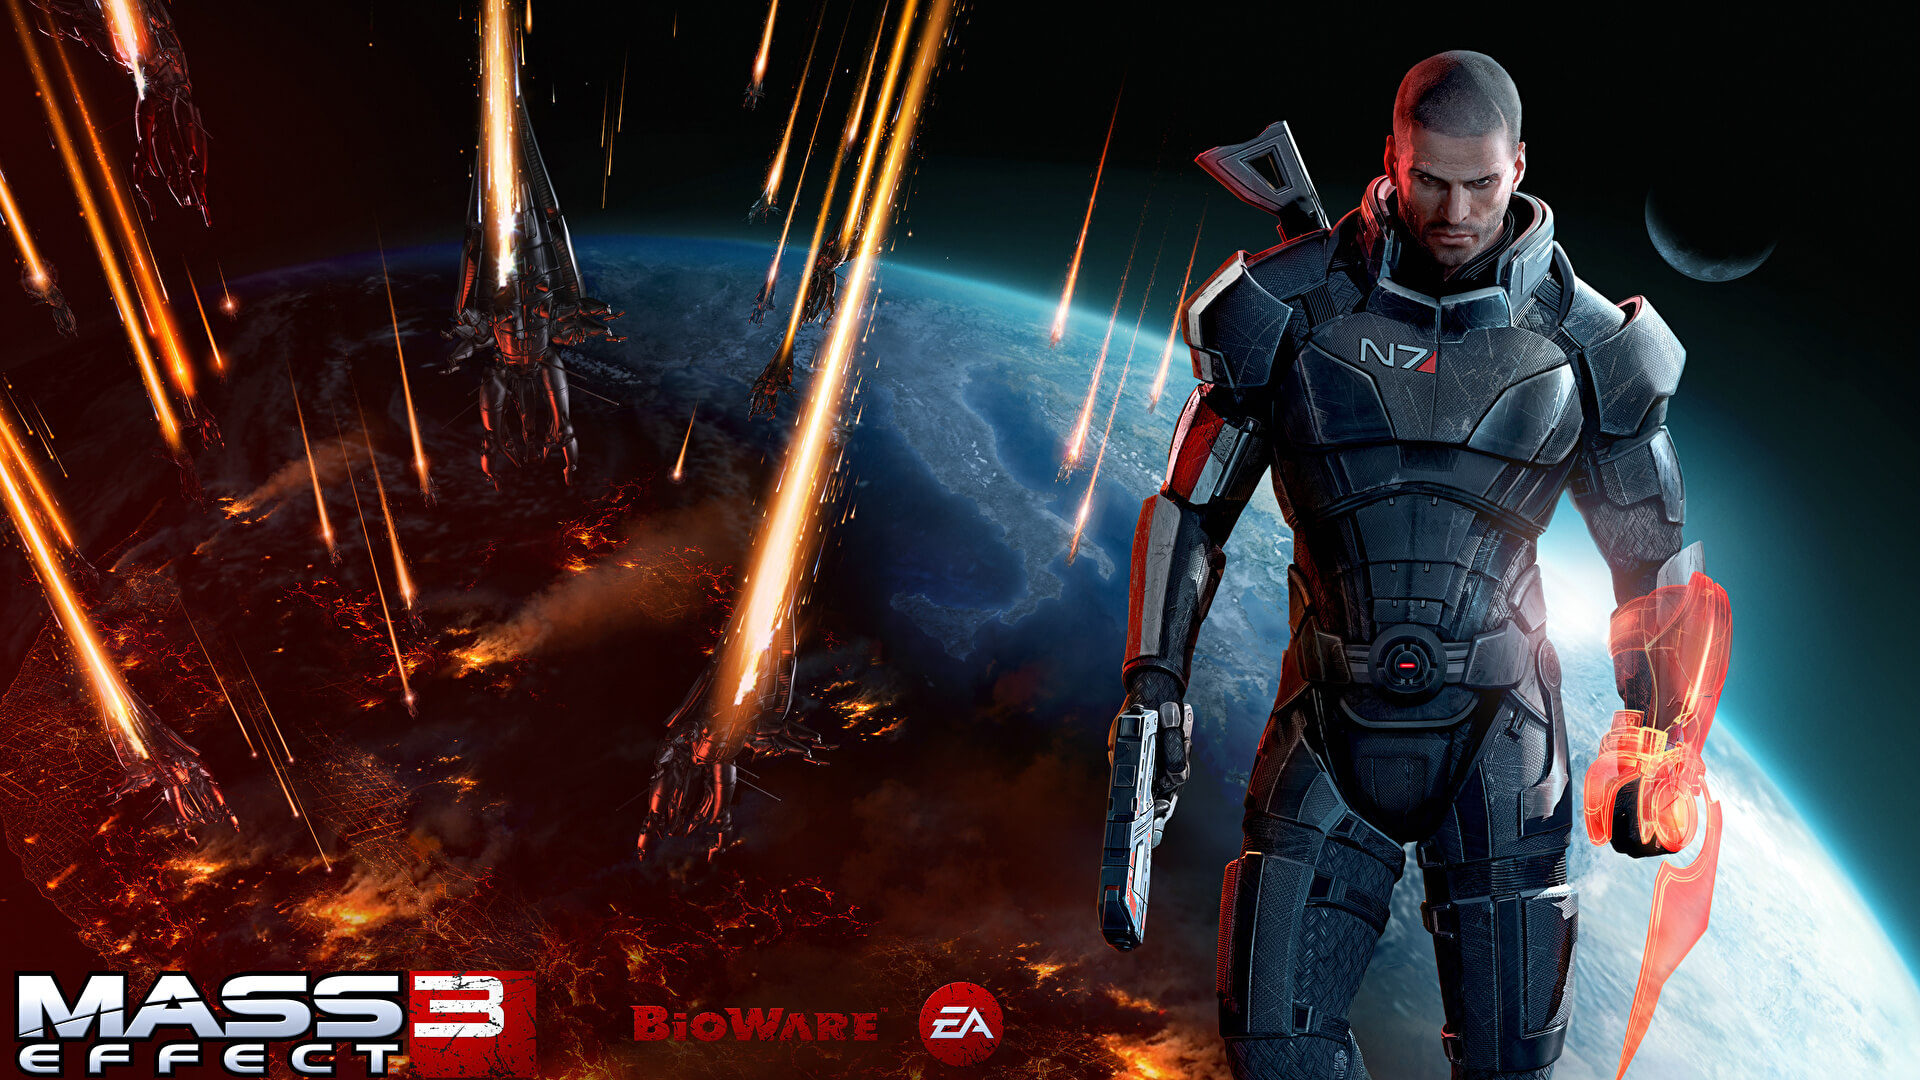 Mass Effect Legendary Edition Releases in May